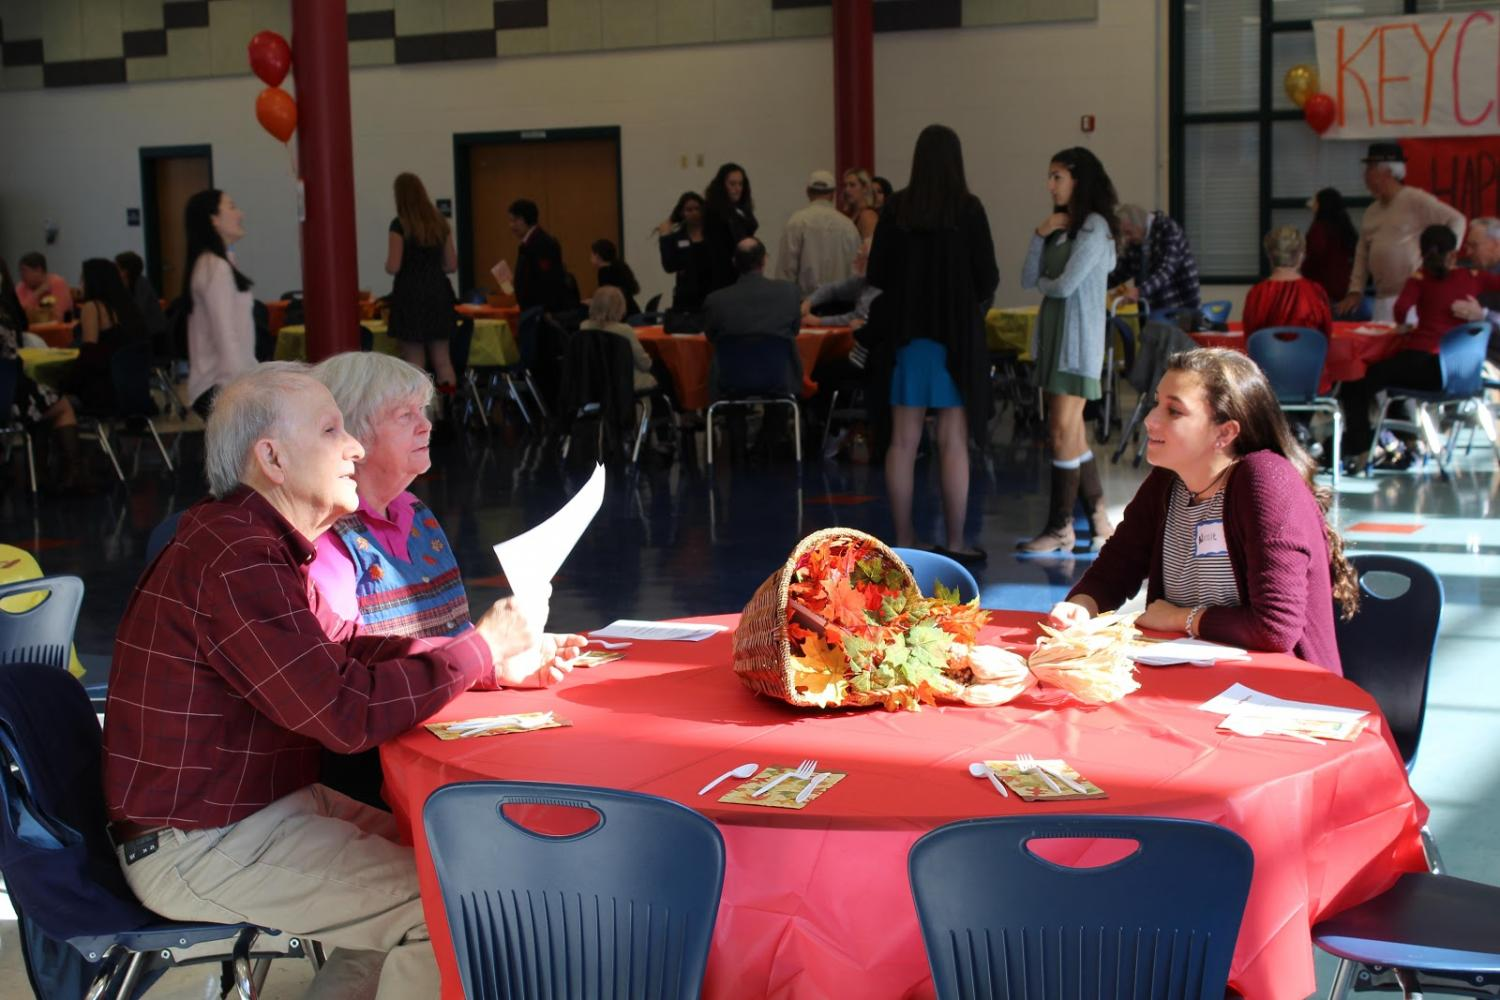 Another successful senior citizen luncheon